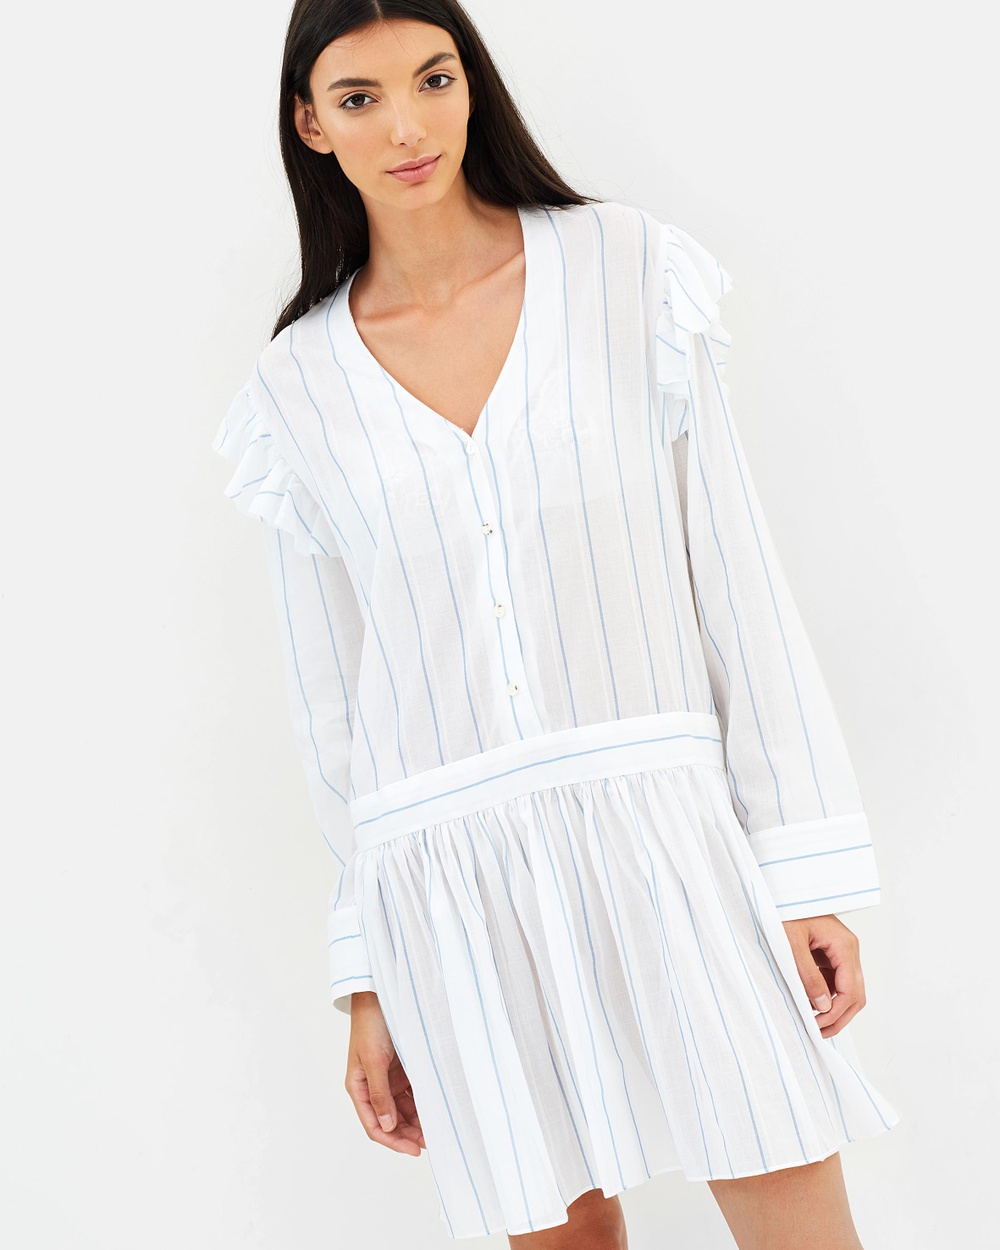 Matin Tavira Ruffle Dress Dresses White Tavira Ruffle Dress